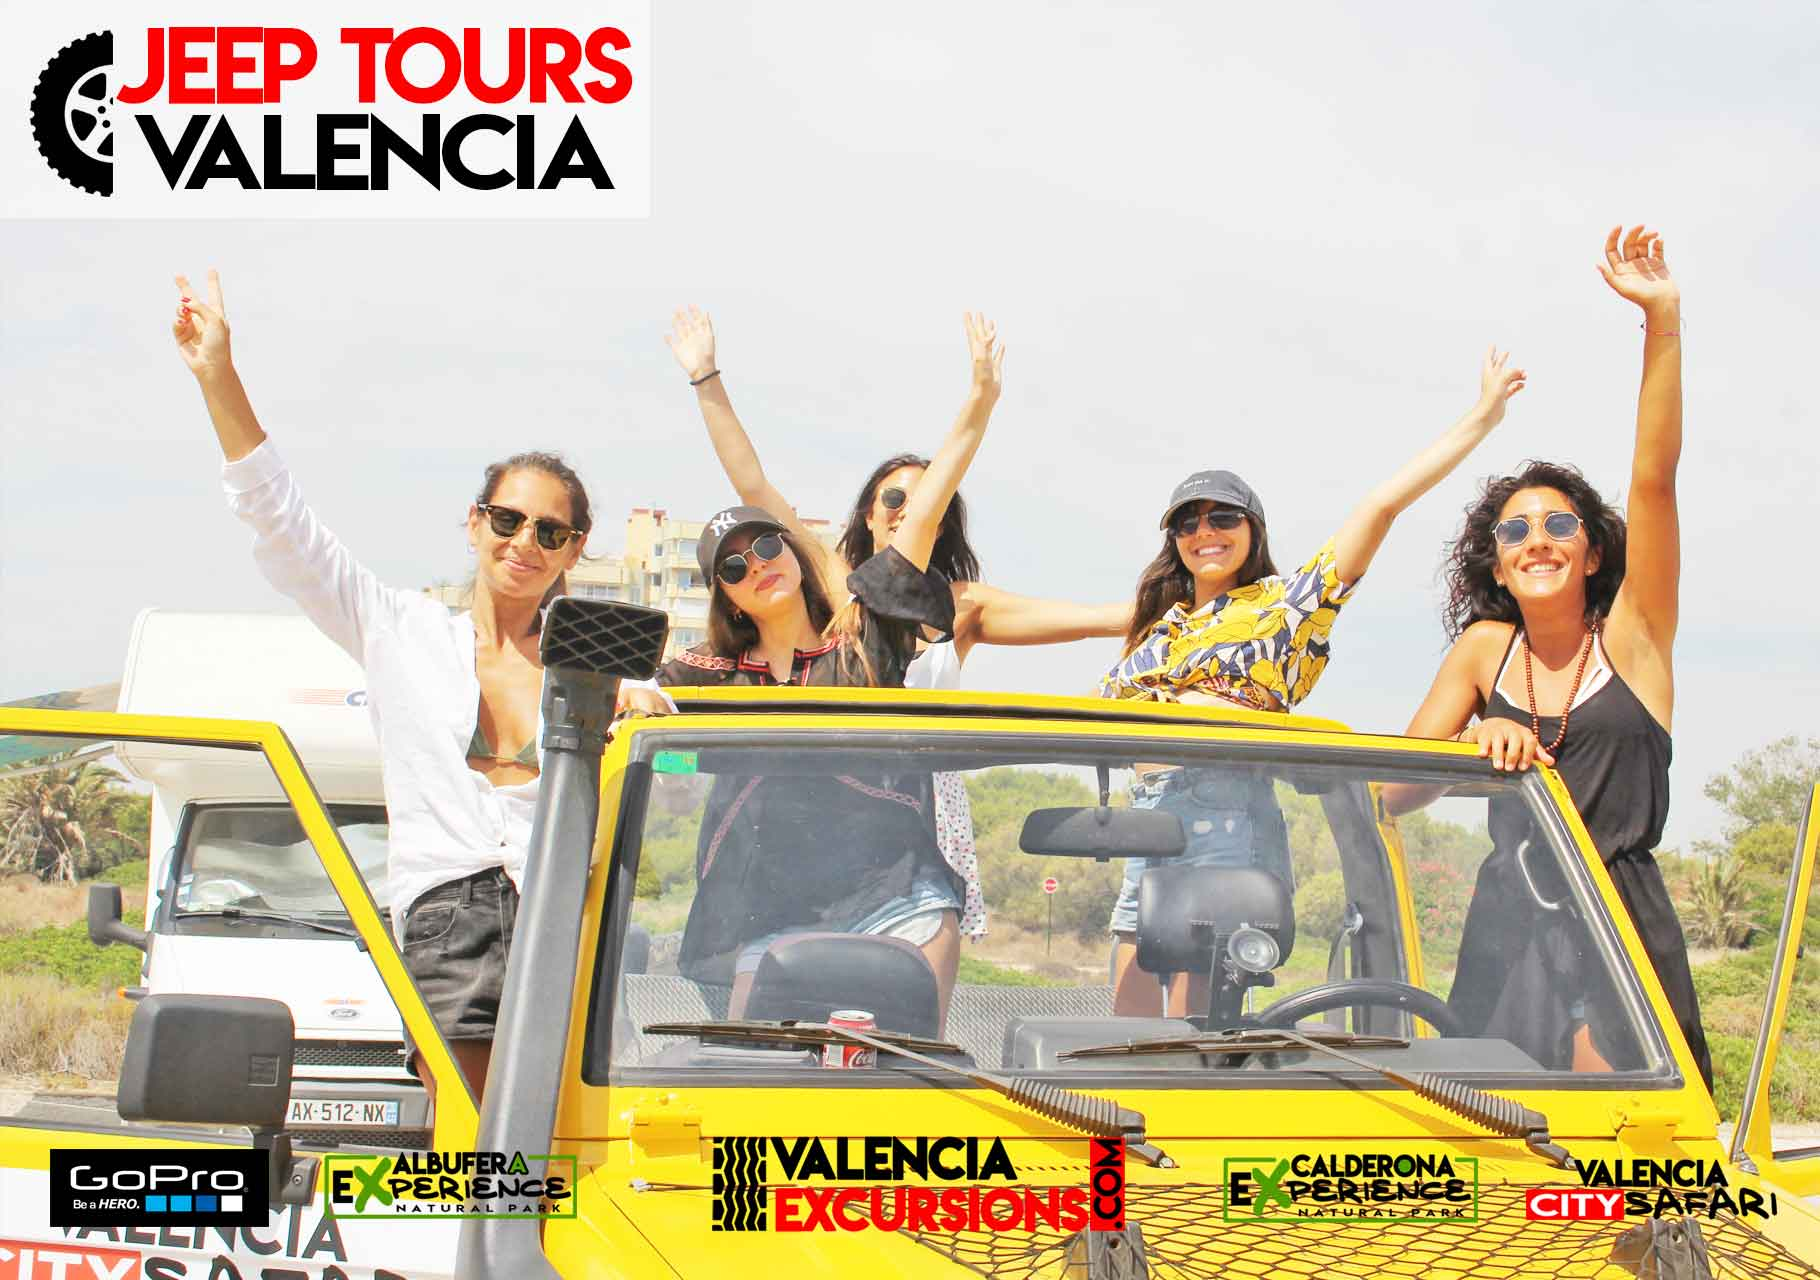 Albufera VAlencia jeep tours and excursions 2020